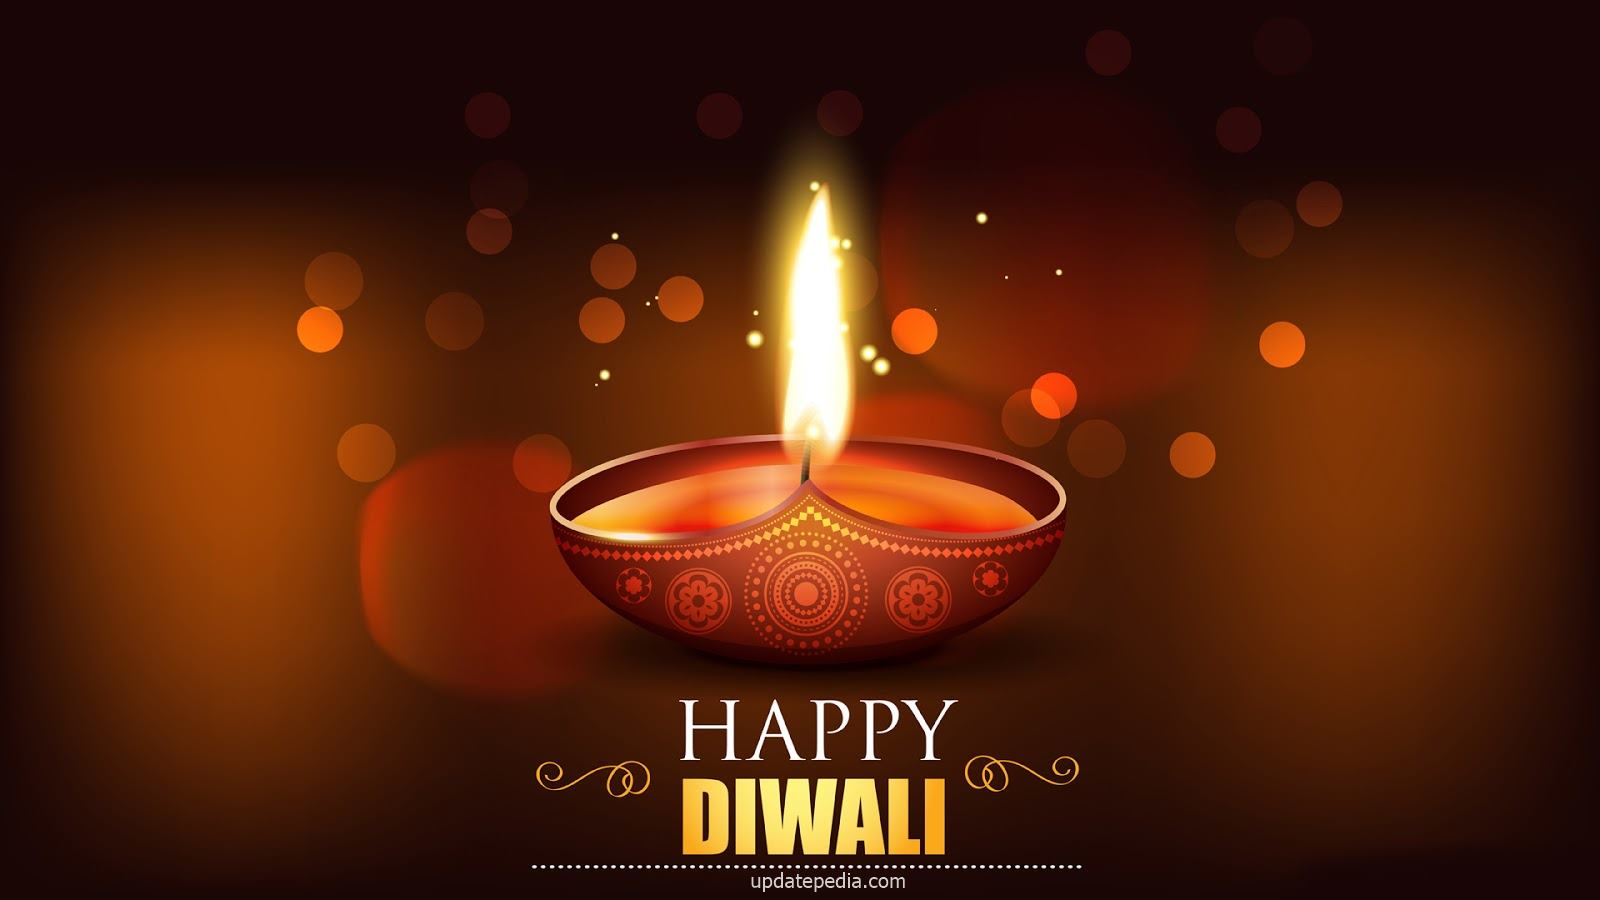 Download Wallpaper Love Diwali - Happy-Diwali-2016-Images-1  Picture_67726.jpg